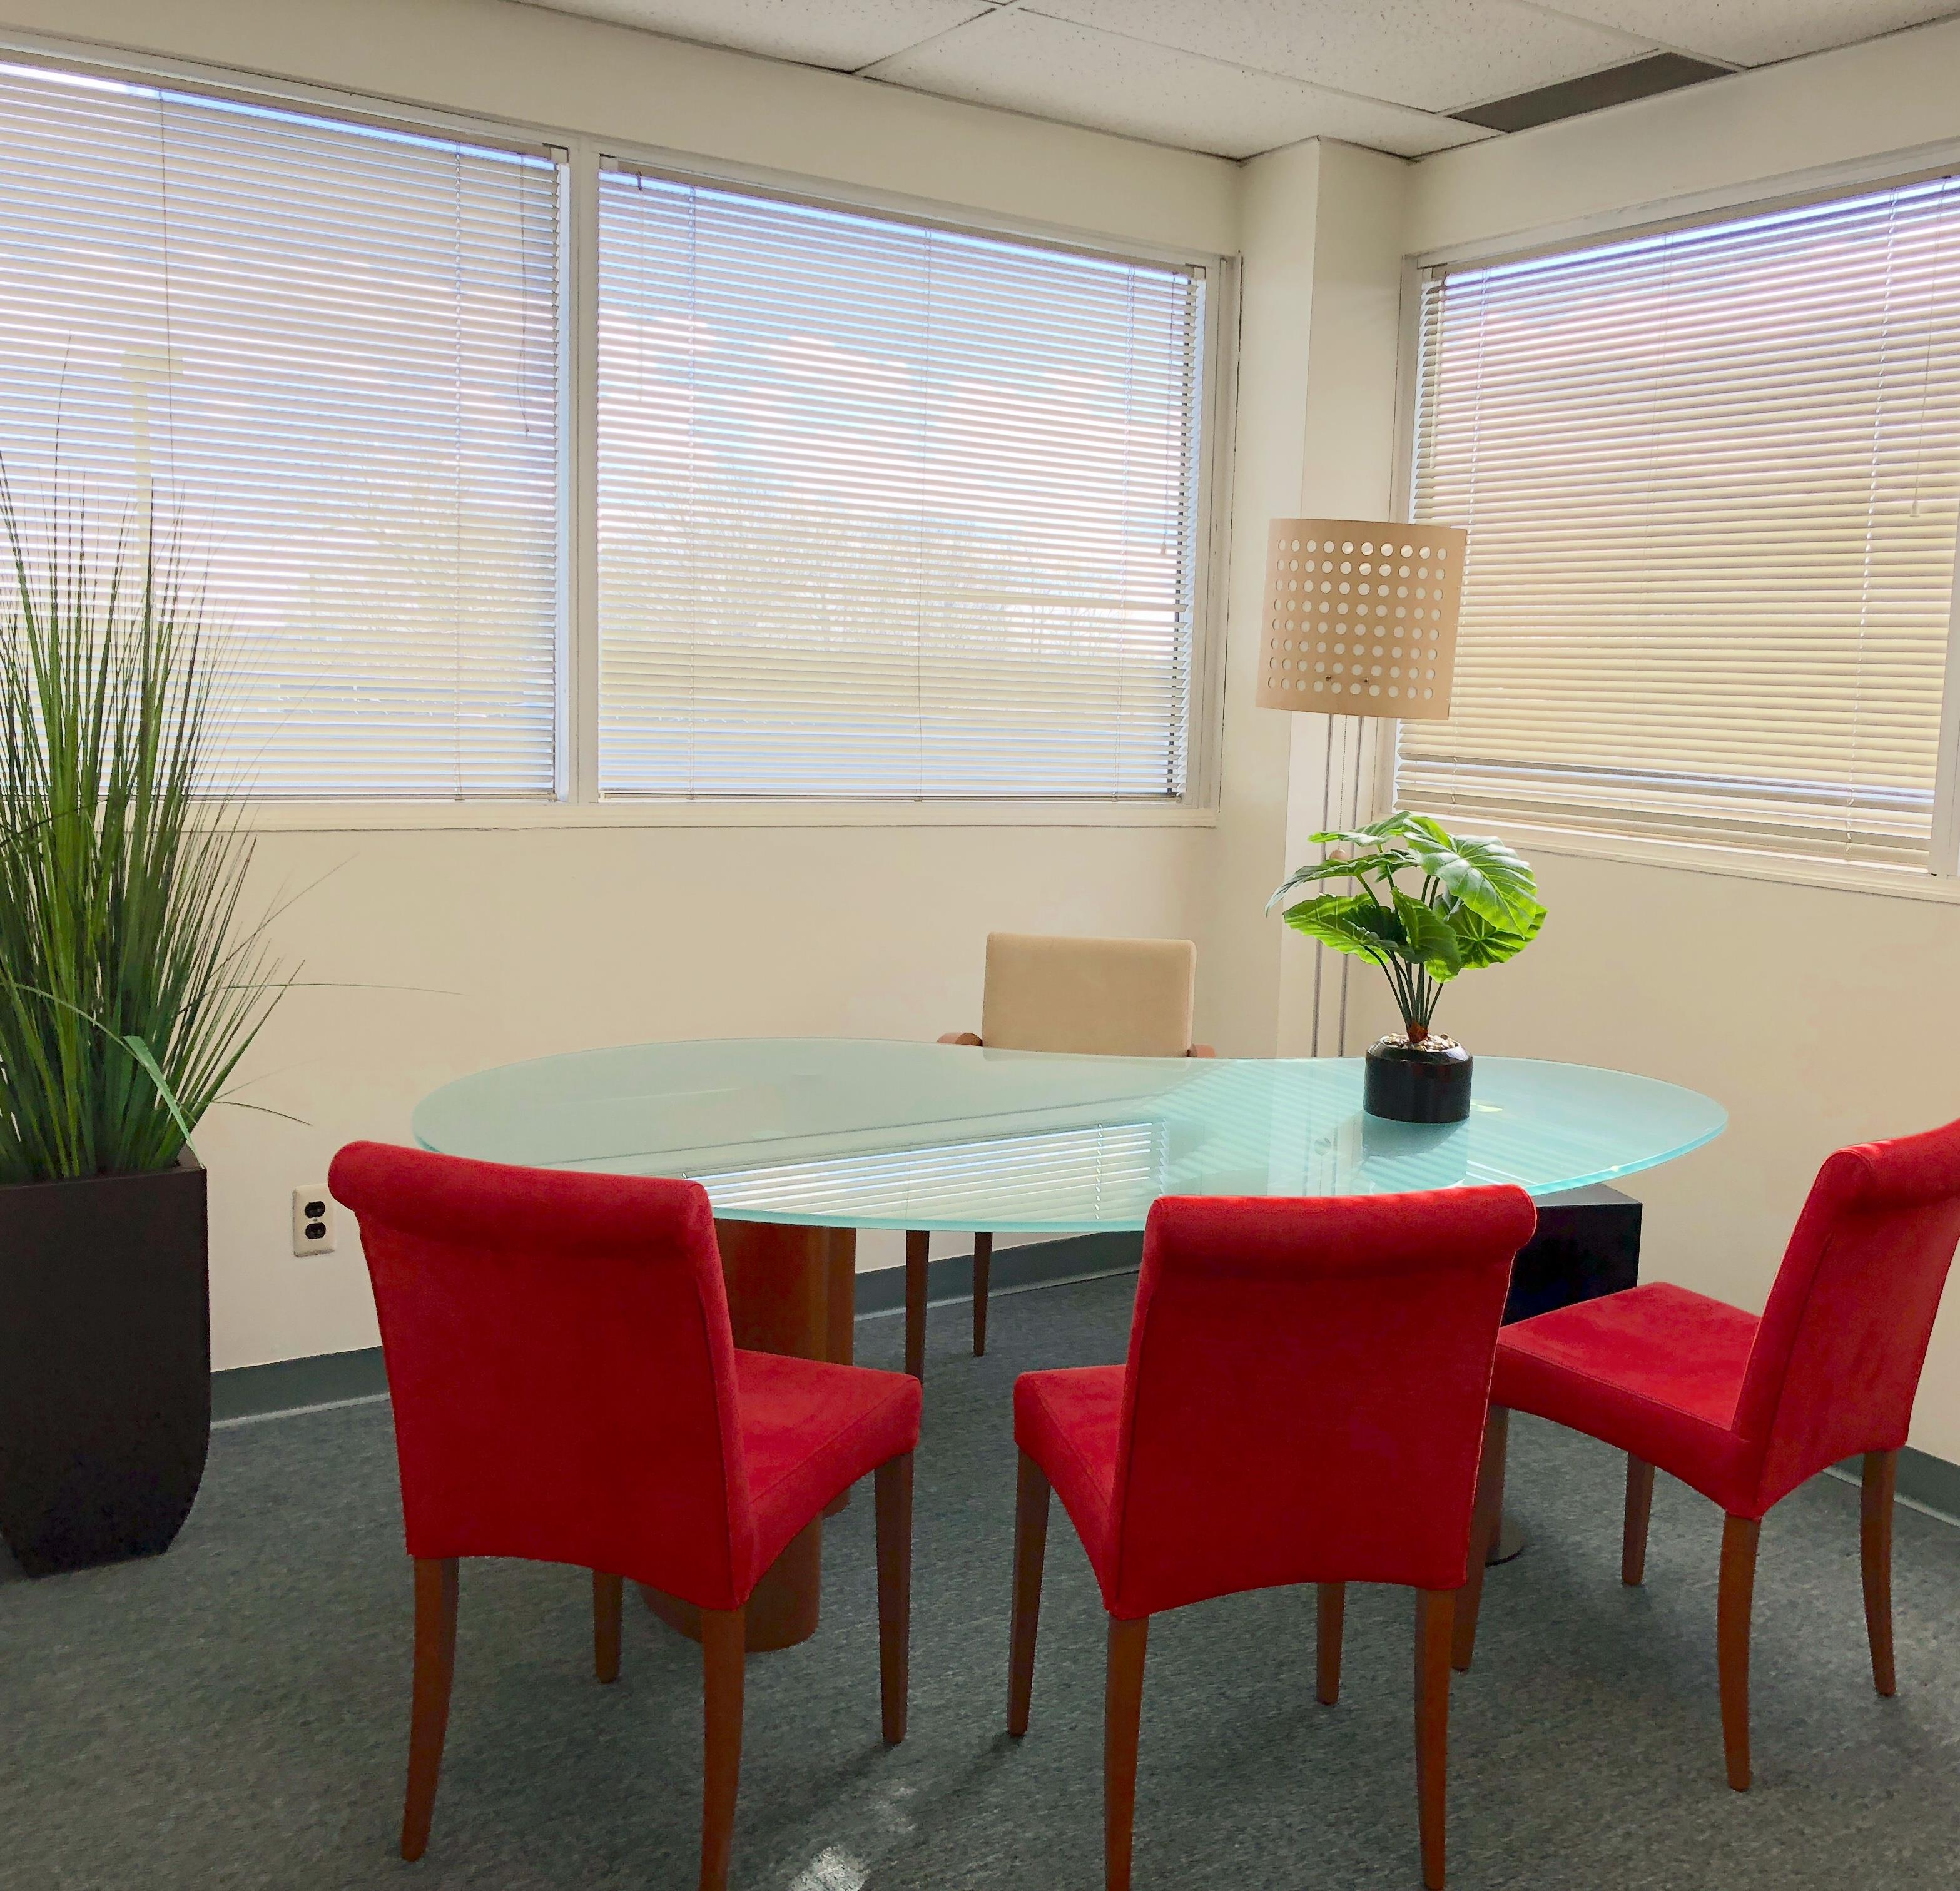 Upper Saddle River Offices - NJ - Private Office Suite - Monthly Rental